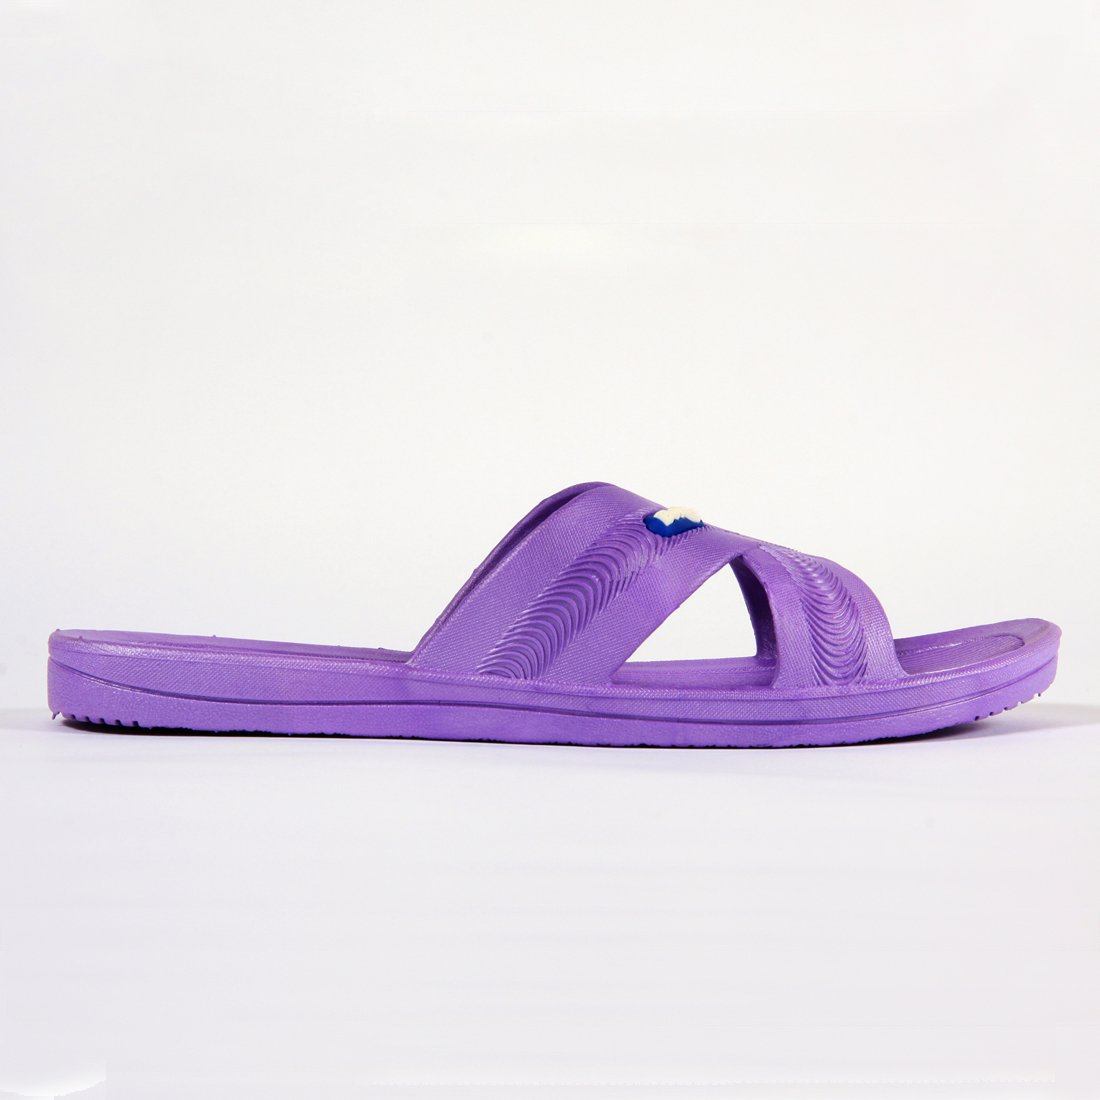 Bokos Women's Rubber Slide Sandals B00GPQHXSA 9 B(M) US|Lavender